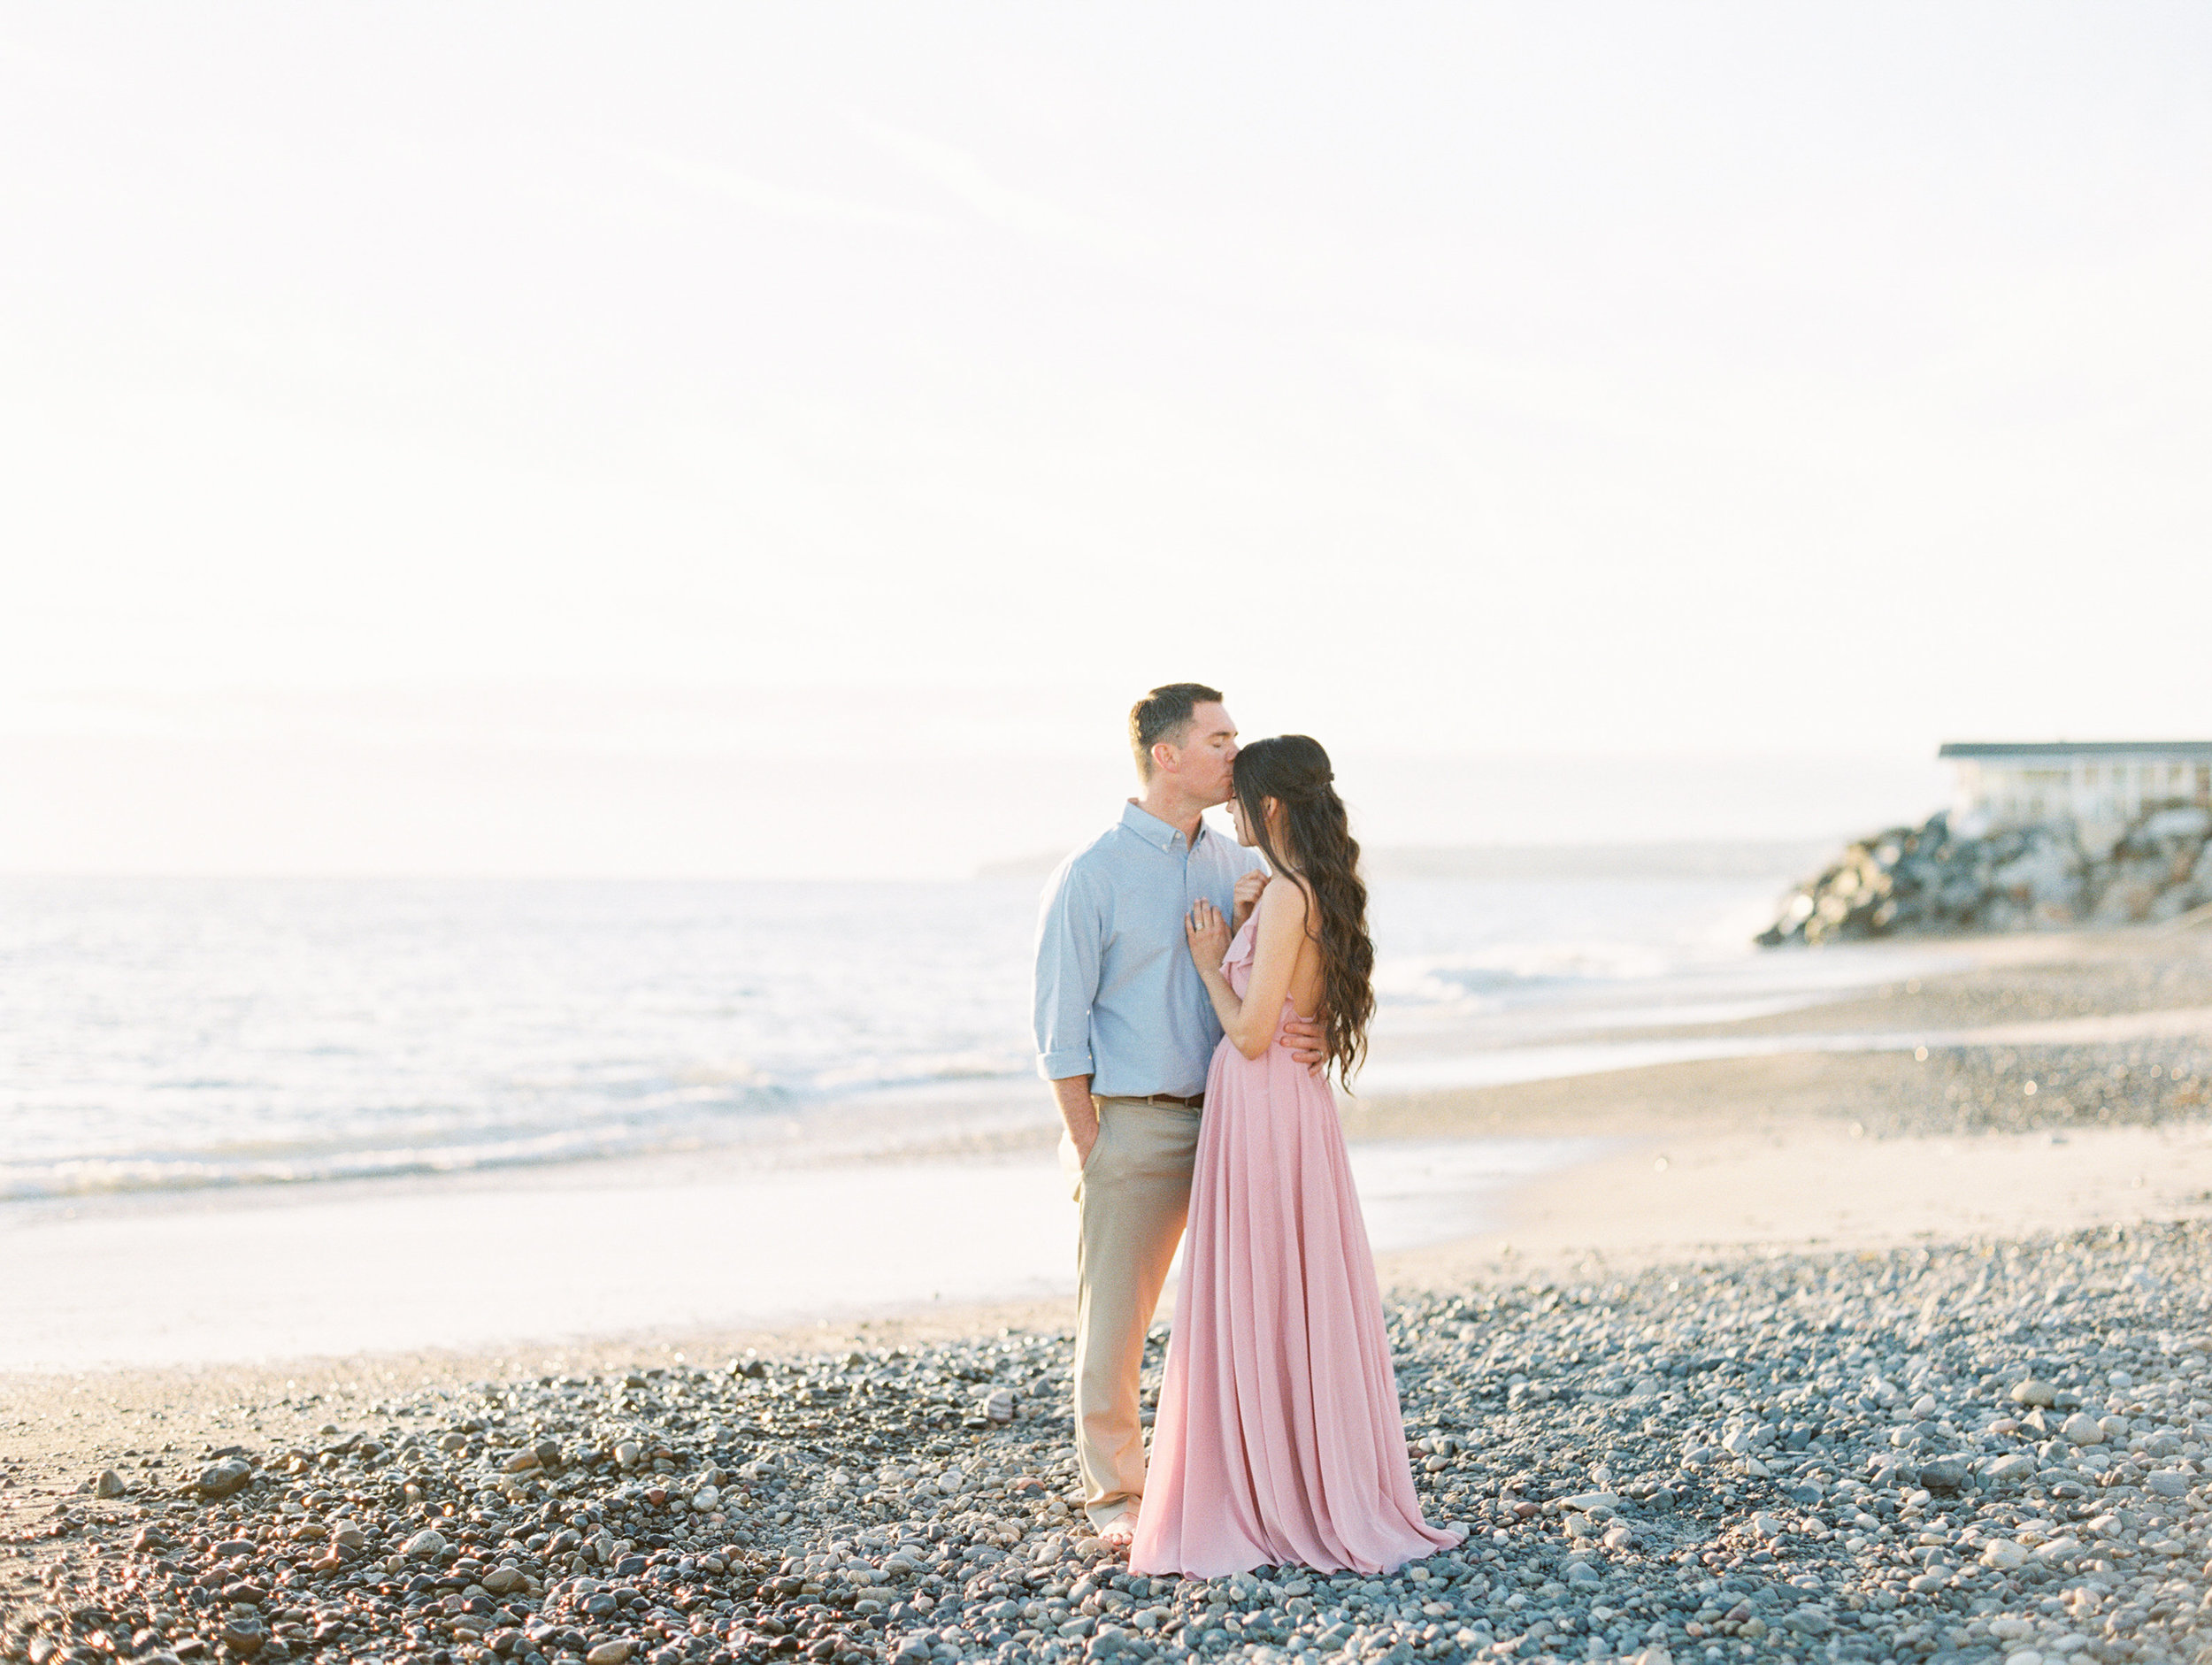 marriage and engagement photo session style on the Love Sparkle Pretty blog. Photo by Mallory Dawn